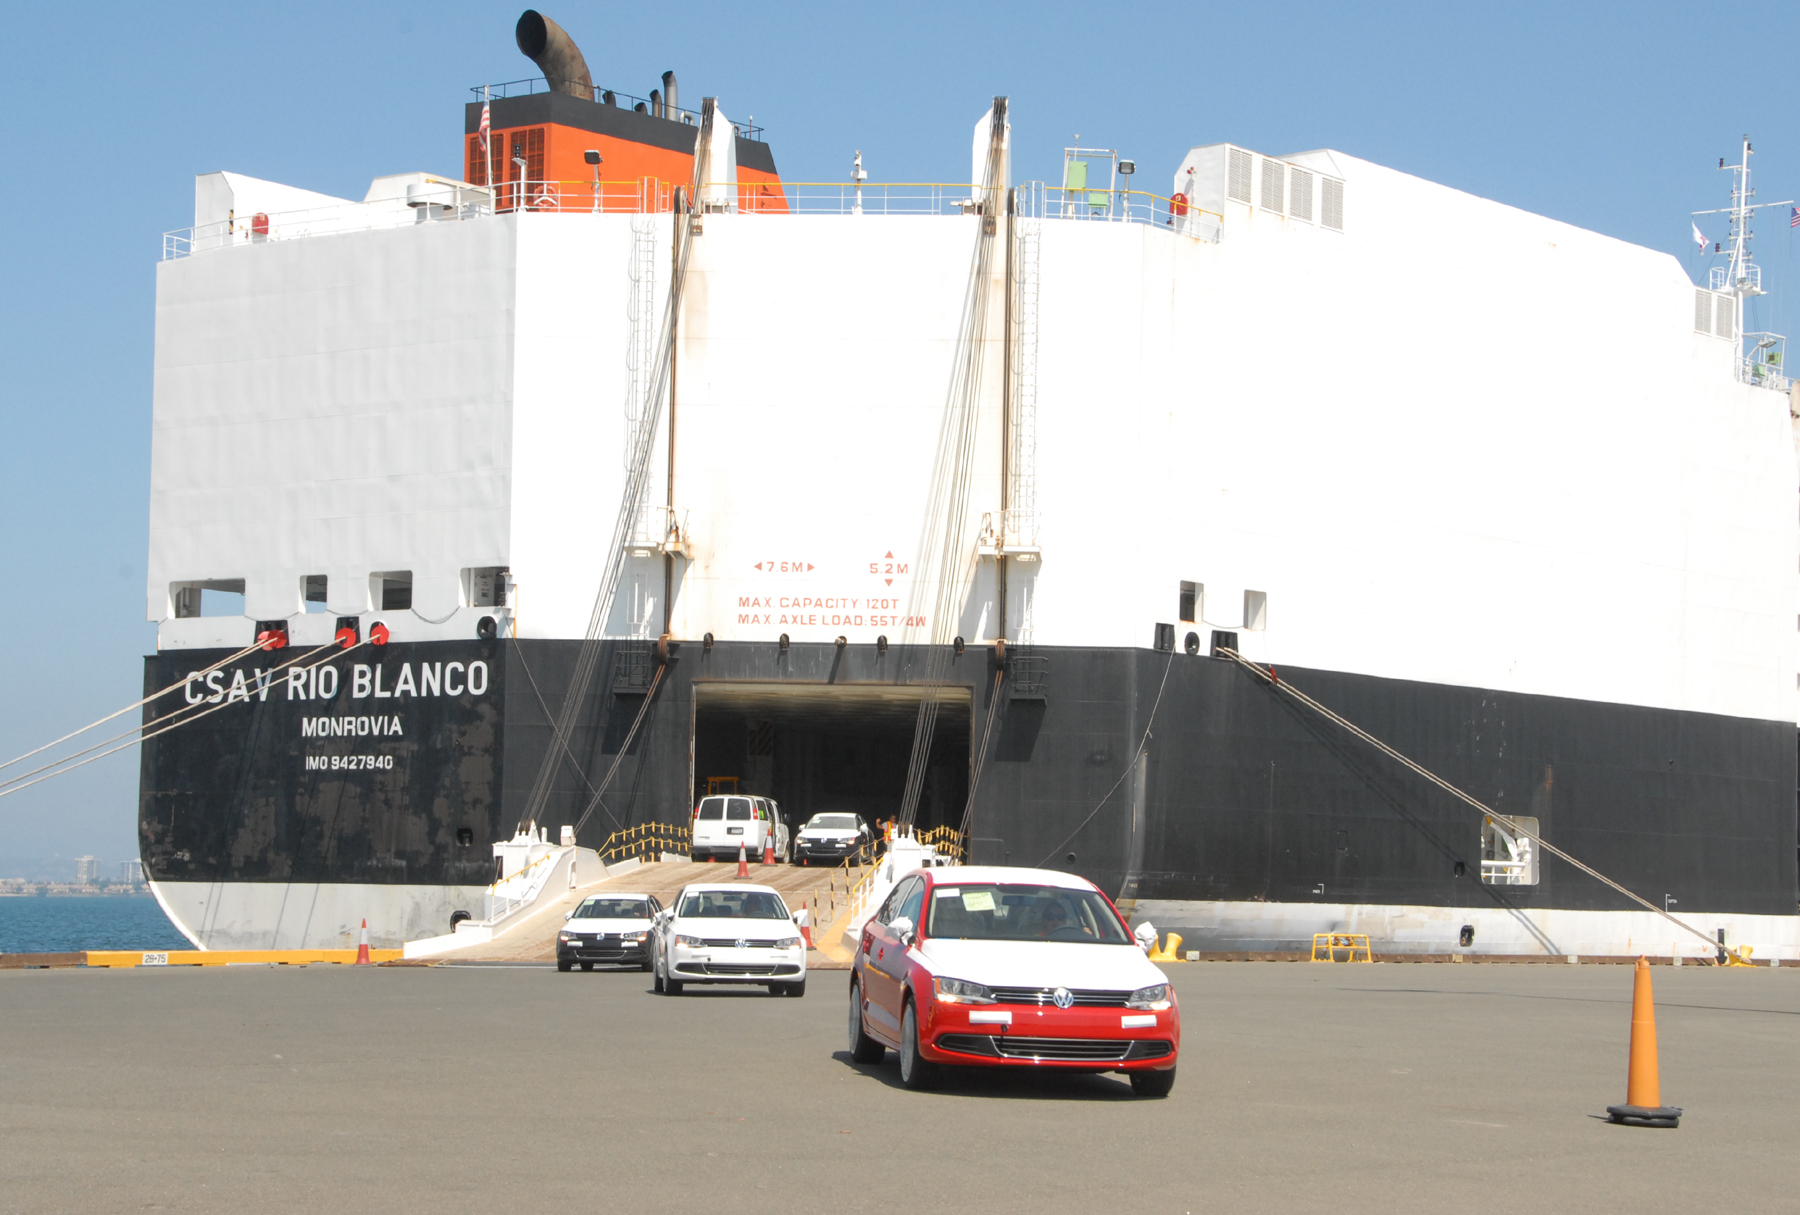 Process and Documentation to Import a Motor Vehicle into Suriname